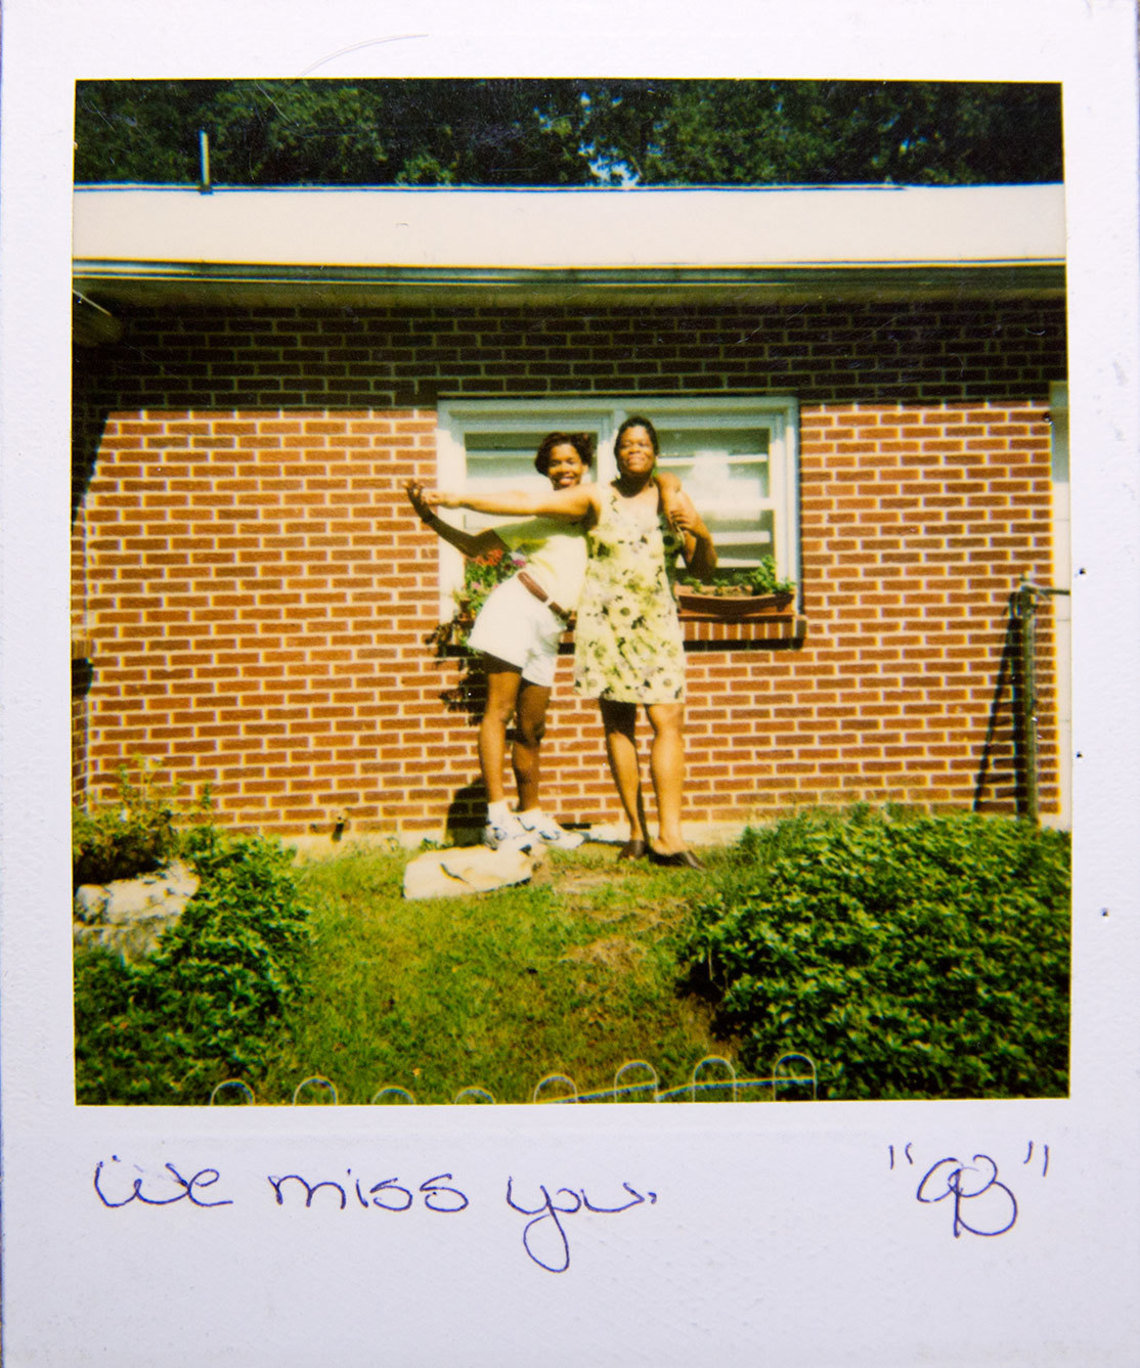 A Polaroid mailed to Ronald by his nieces while he was incarcerated in the 1990s.